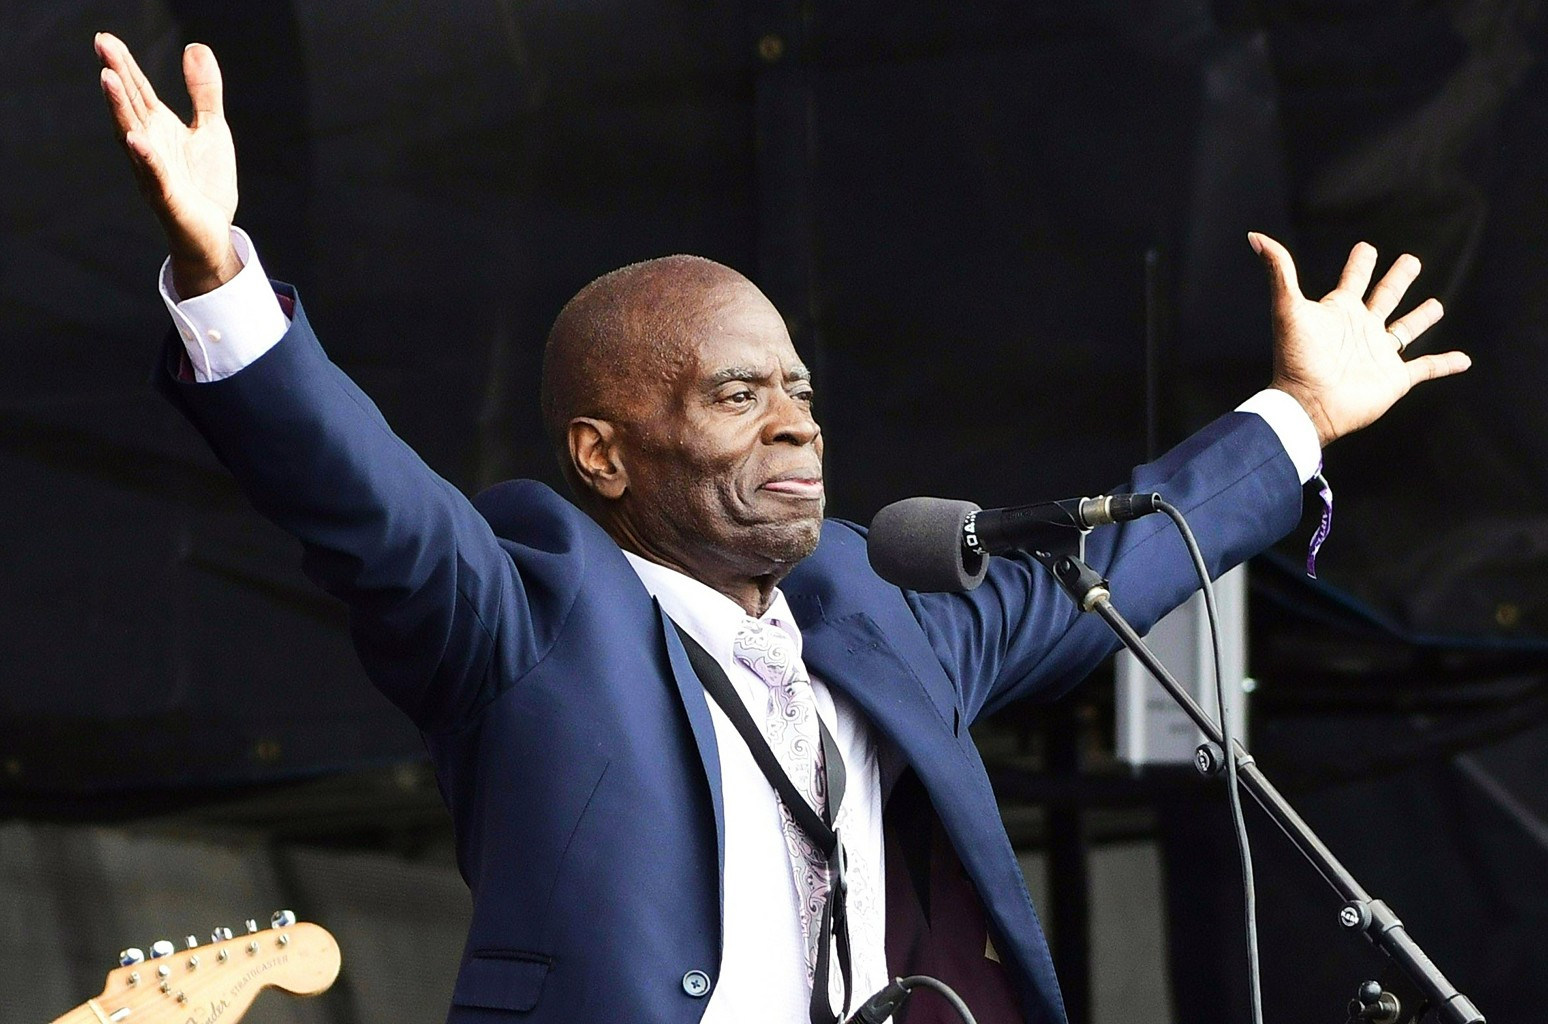 Maceo Parker performs at Newport Jazz Festival 2017